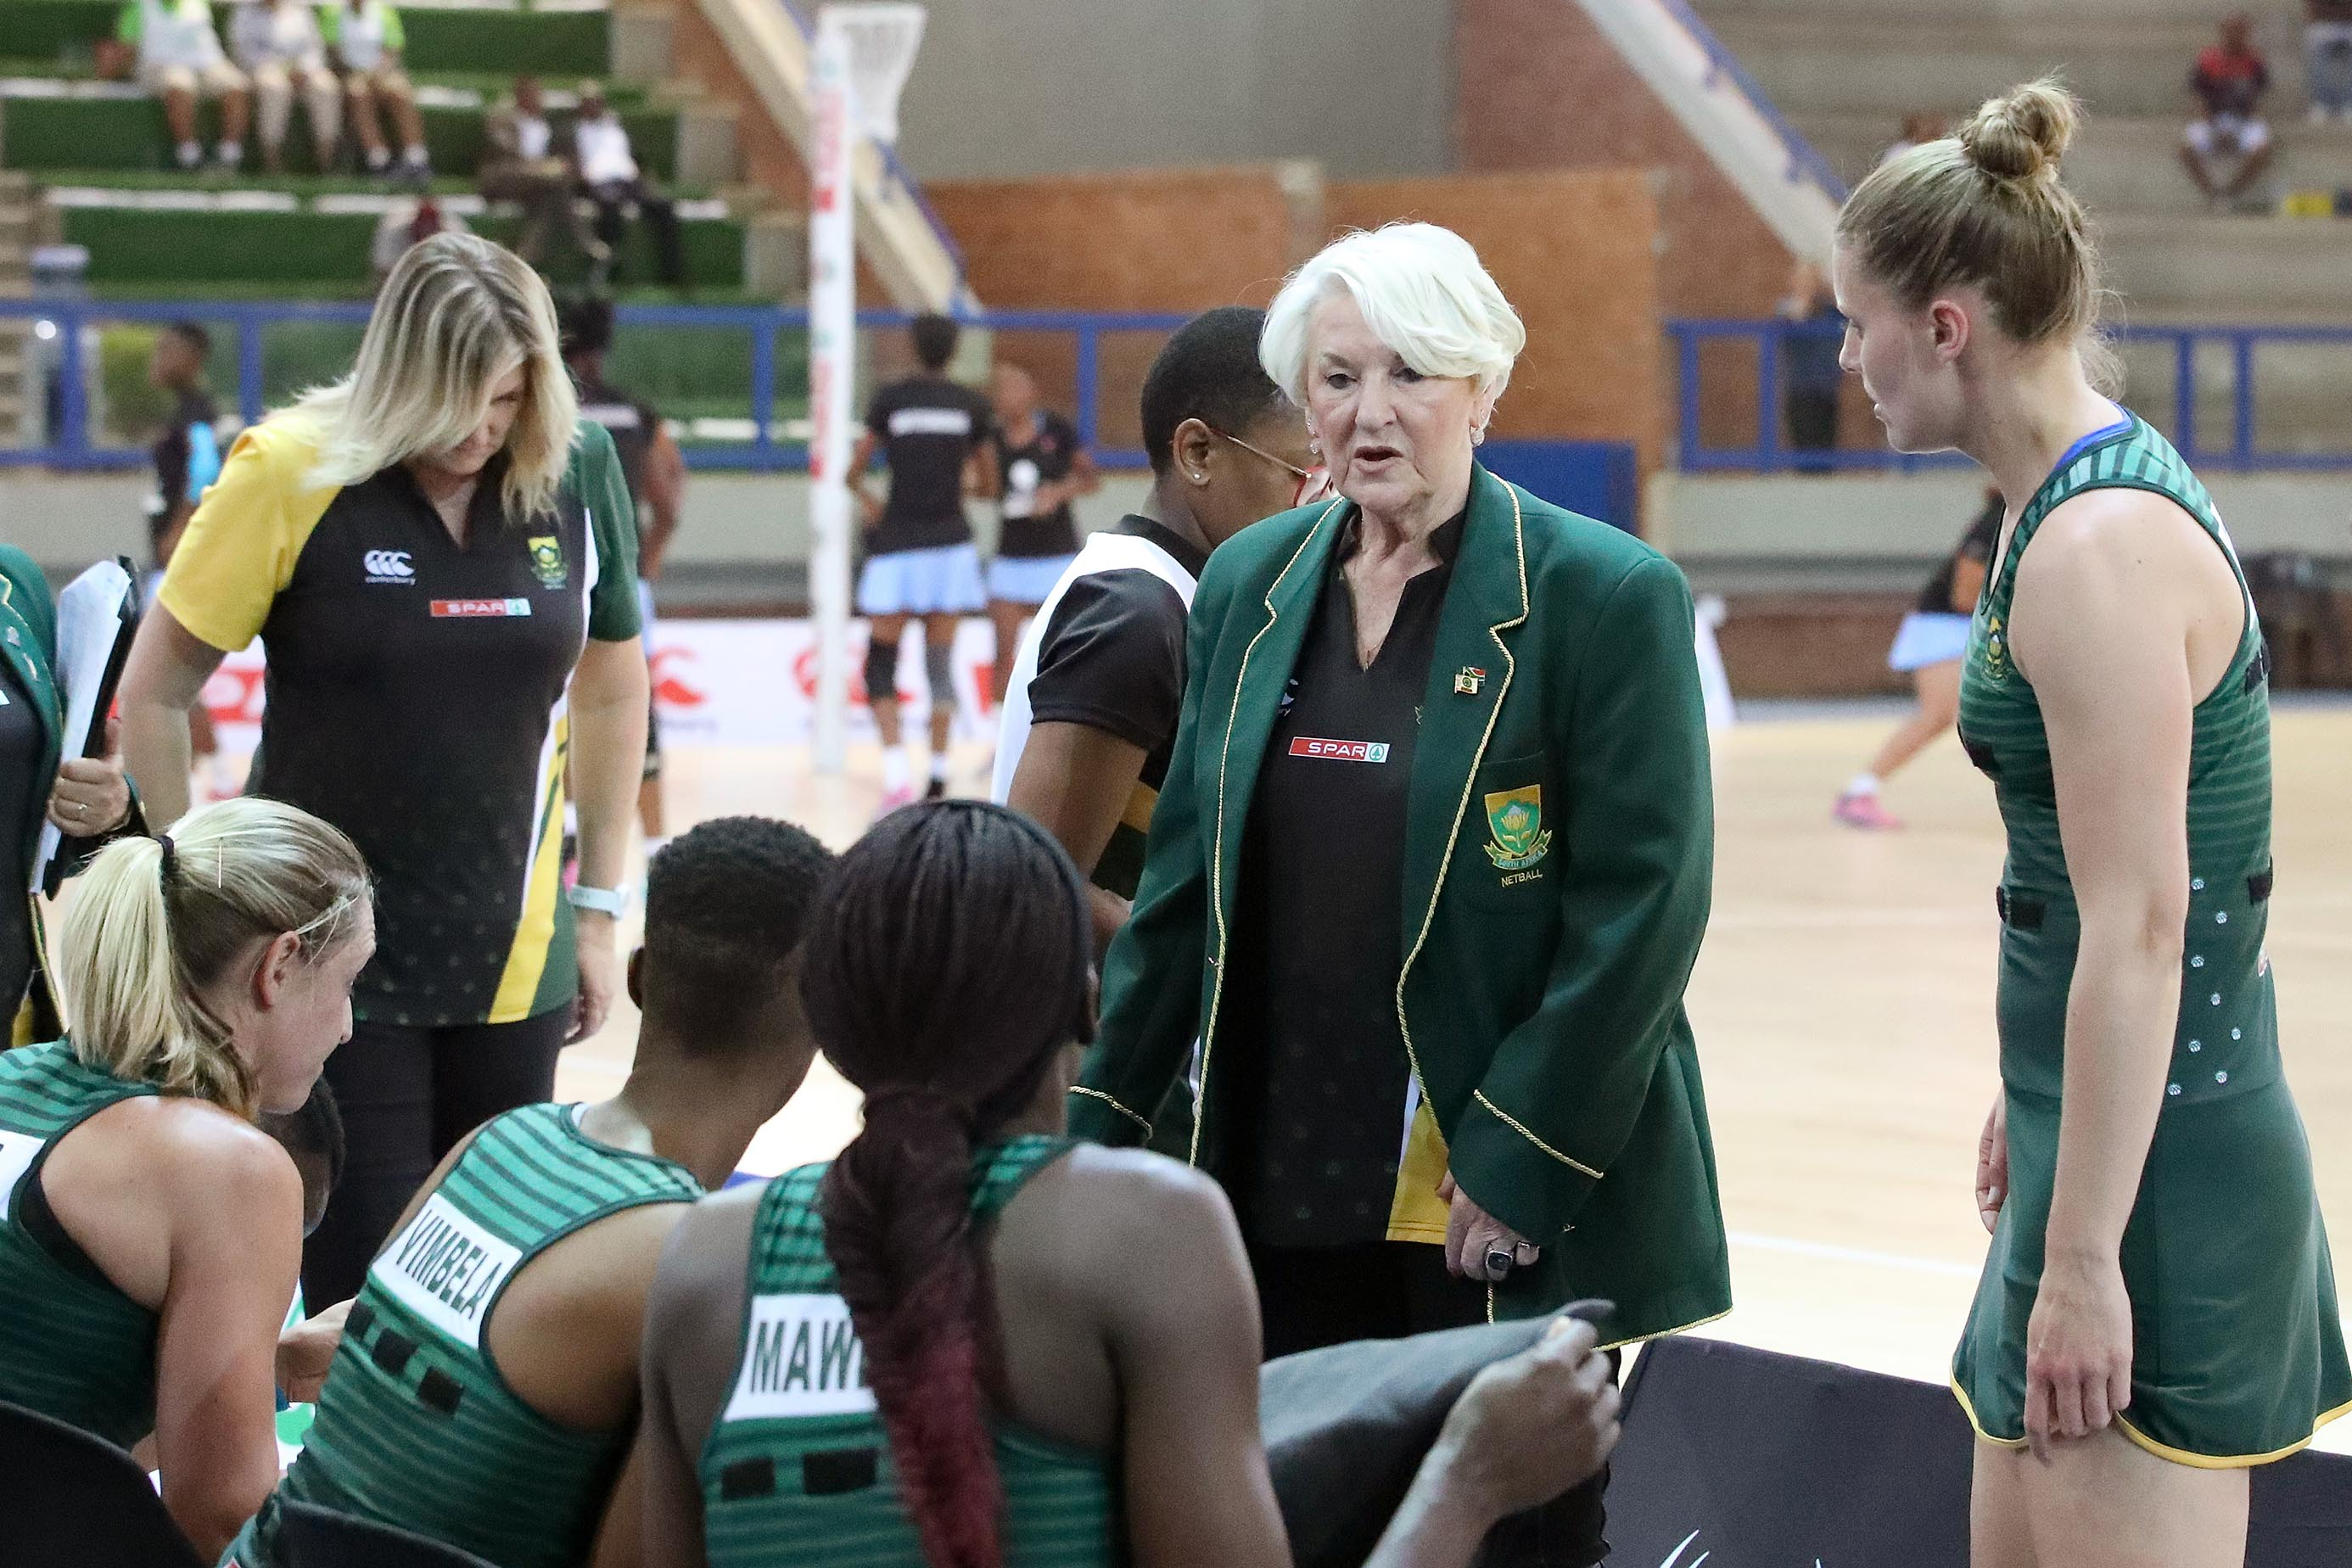 28 November 2018: Spar Proteas coach Norma Plummer speaks to her netball team before their Diamond Challenge game against Botswana at the Ngoako Ramatlhodi centre in Polokwane. (Photograph by Reg Caldecott/Gallo Images)